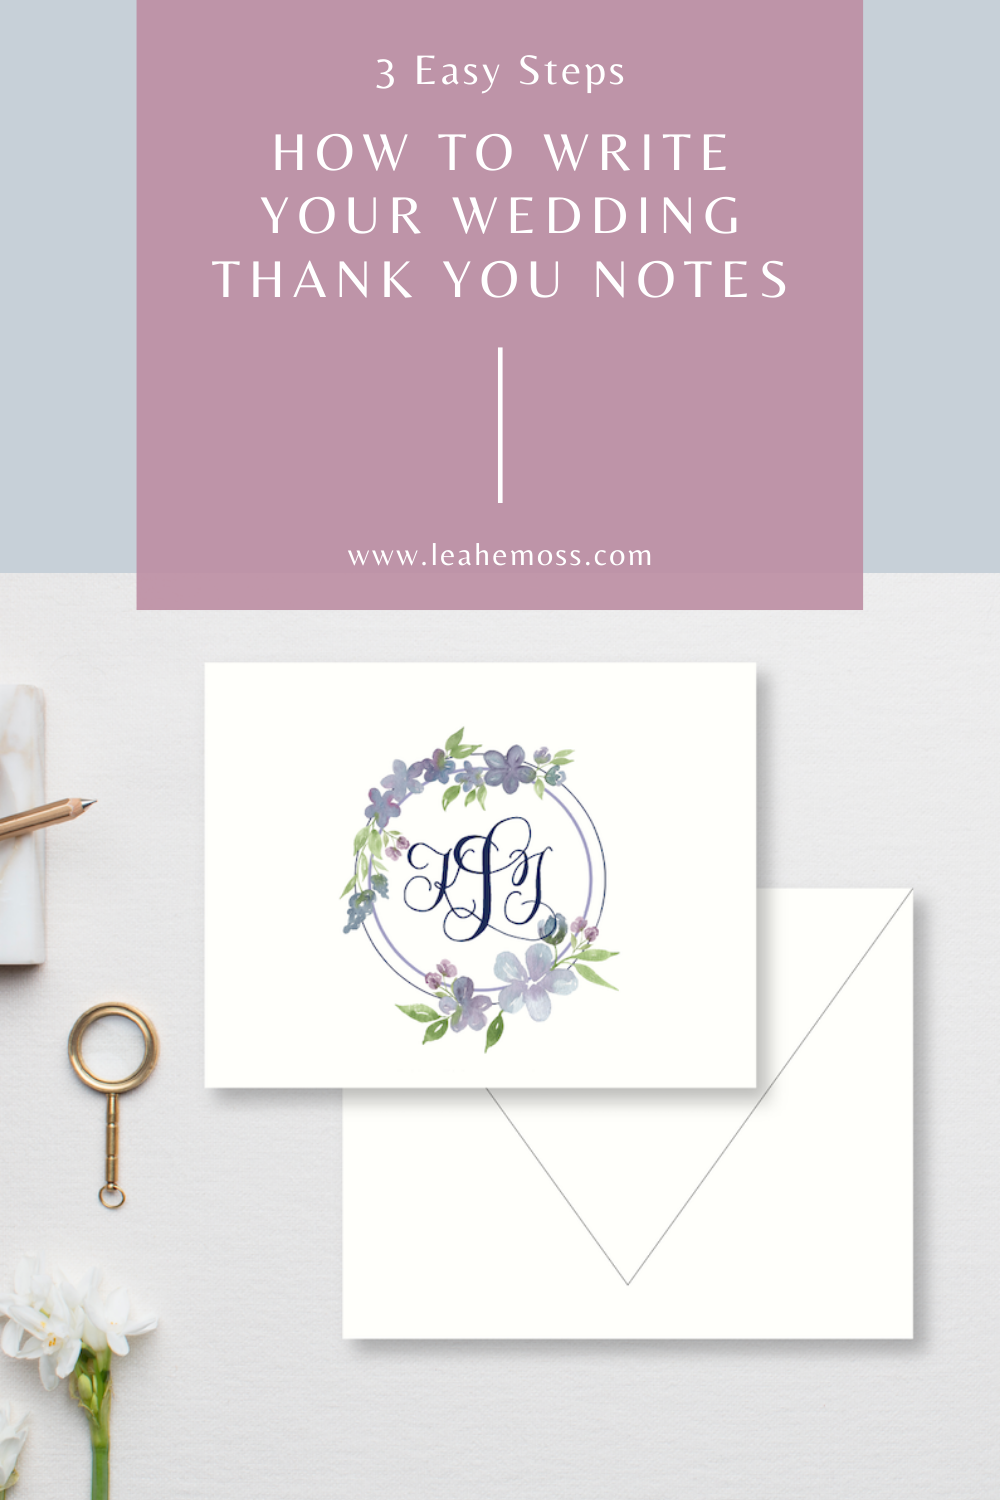 3 easy steps: how to write your wedding thank you notes - Leah E. Moss Designs